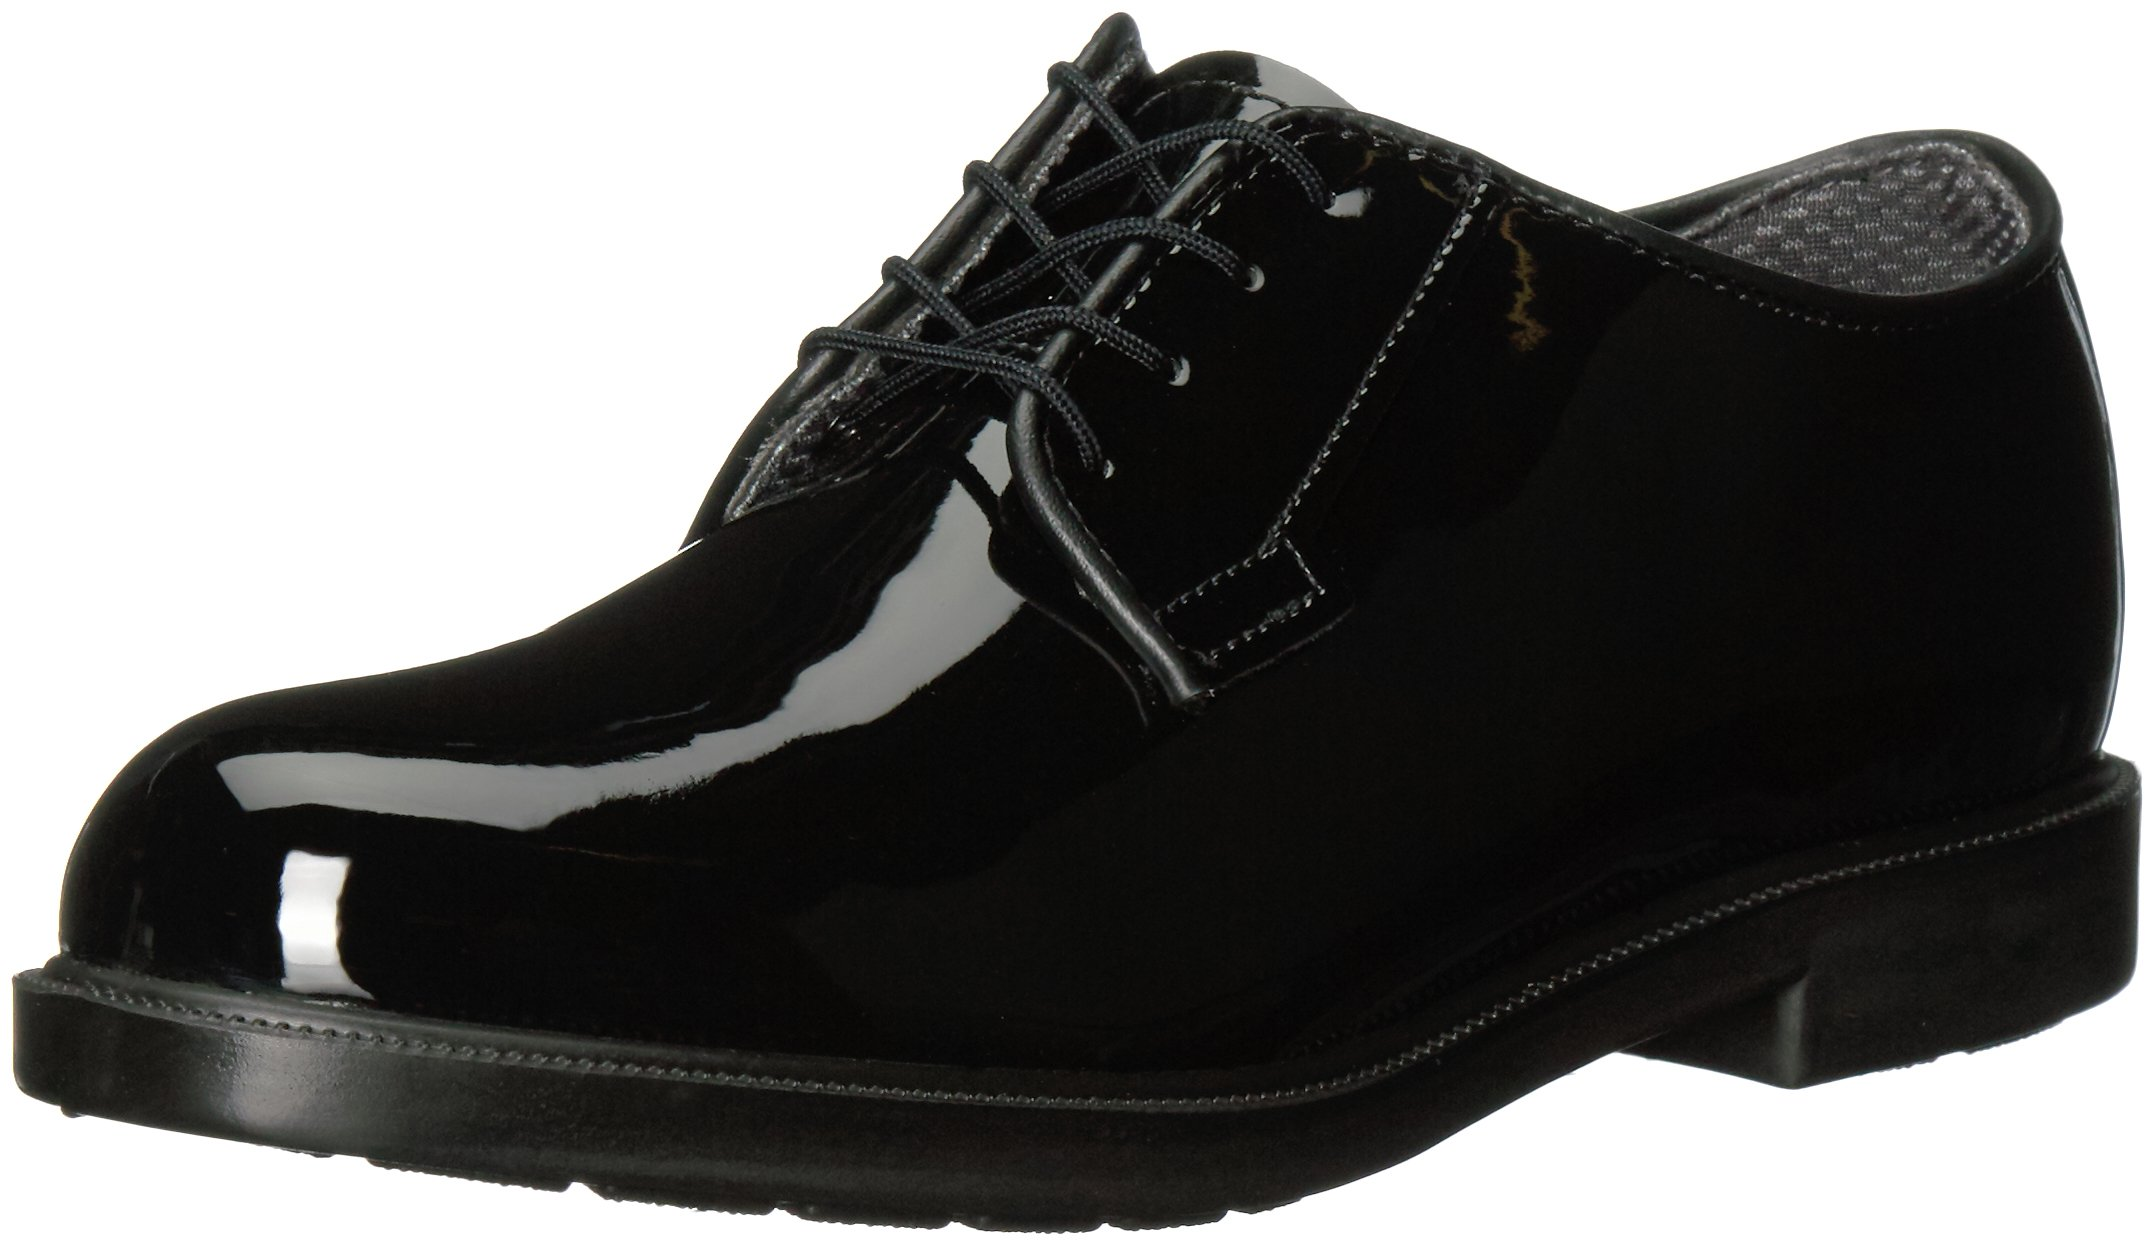 Bates Women's High Gloss Durashocks Shoe,Black,7 W US